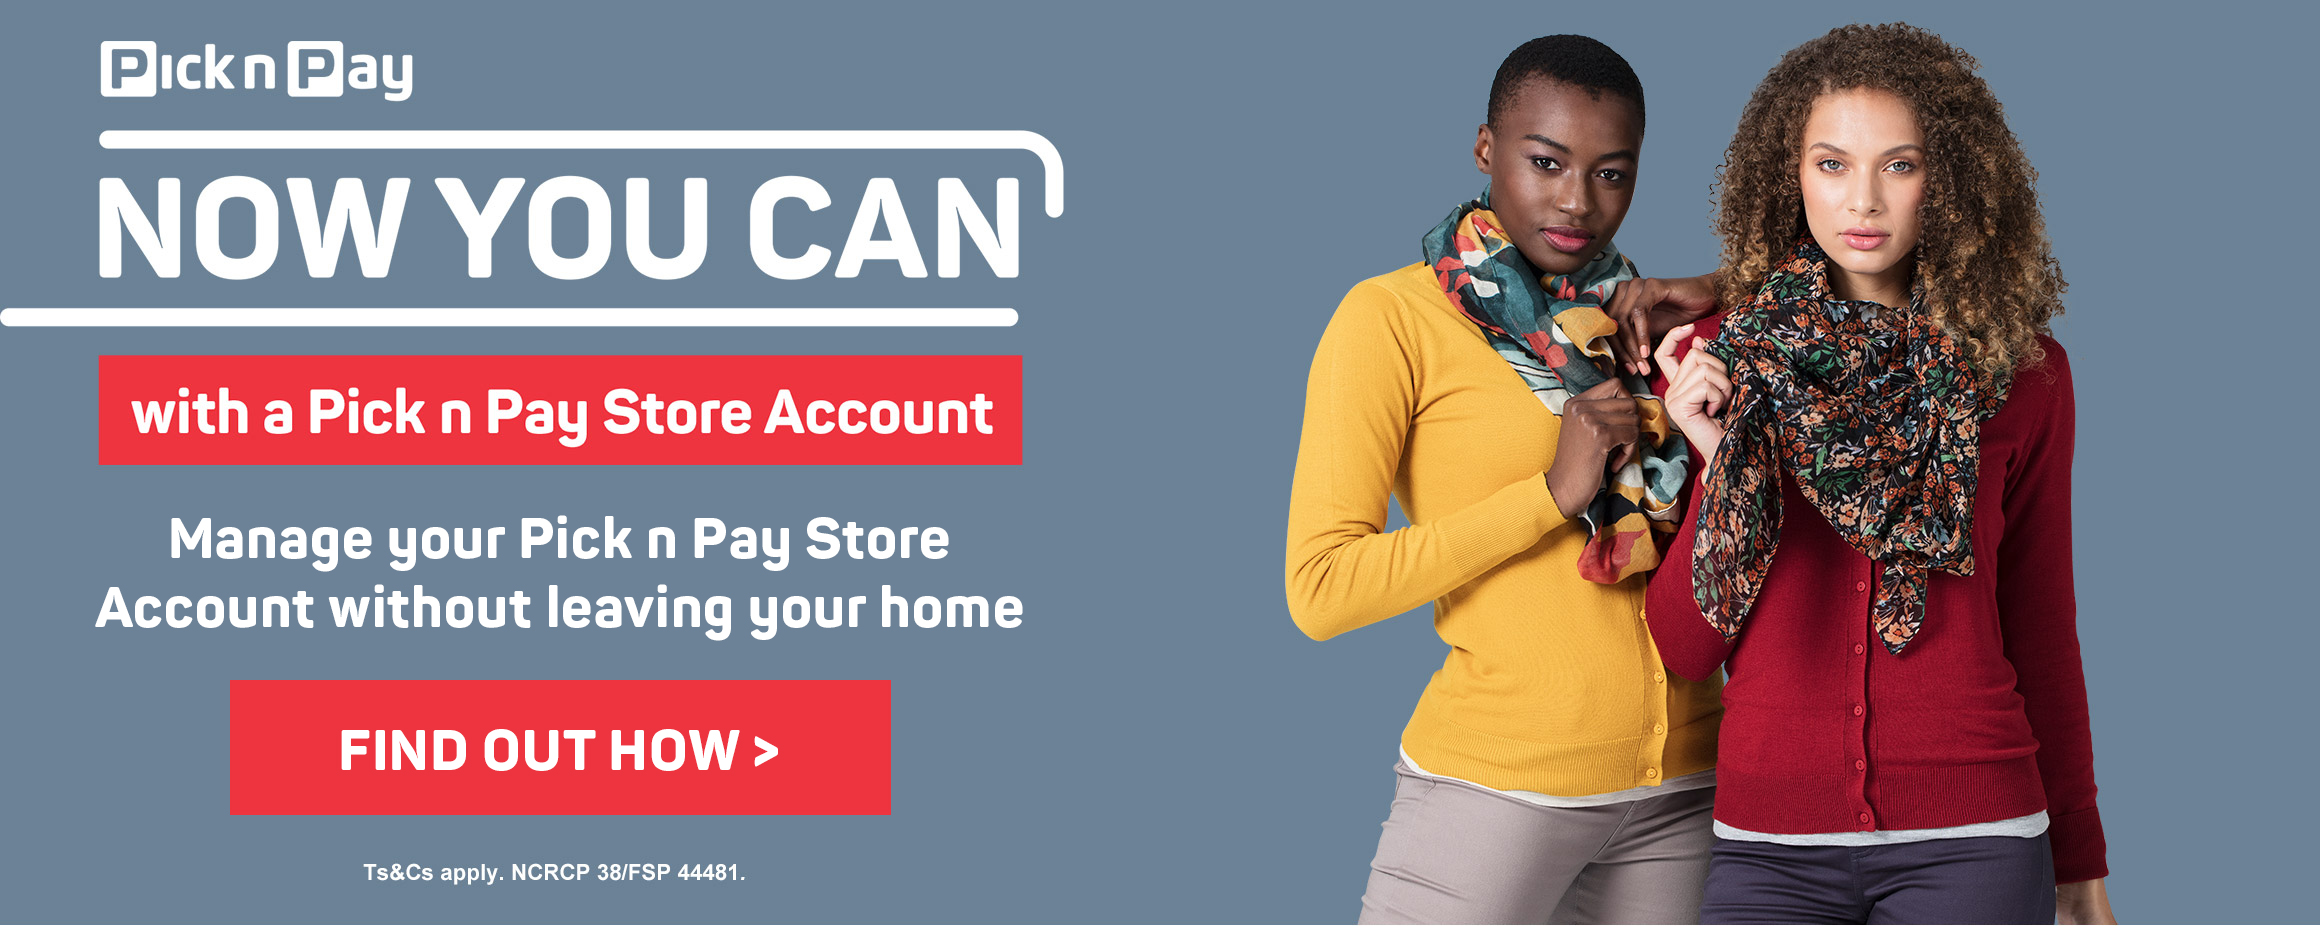 Now your can with a Pick n Pay Store Account.